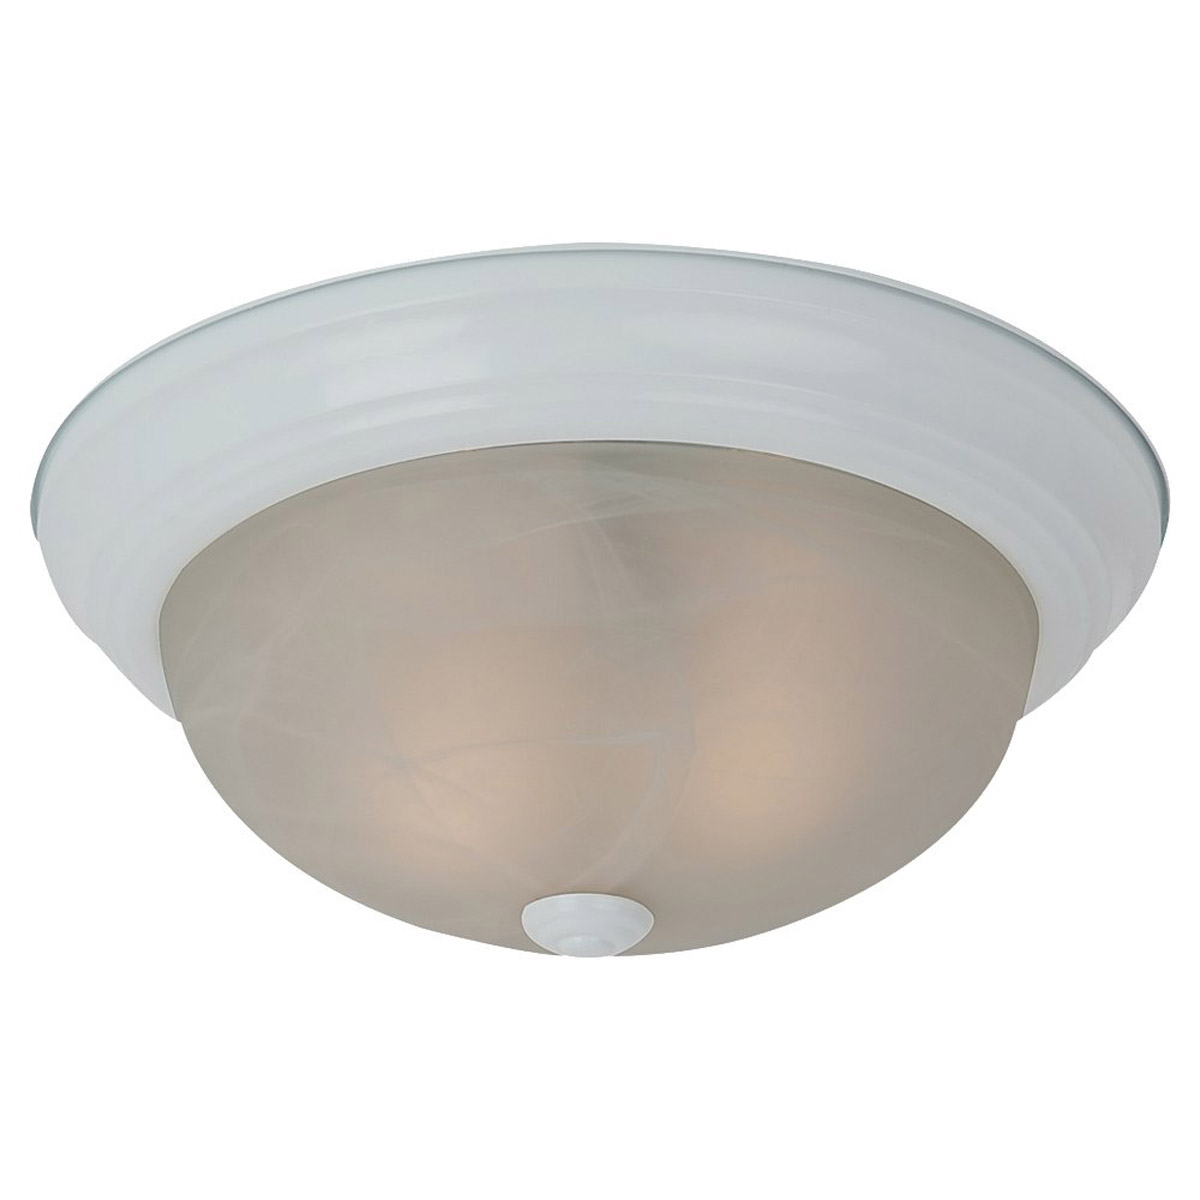 Sea Gull 75943BLE-15 Windgate 3 Light 15 inch White Flush Mount Ceiling Light in Fluorescent photo